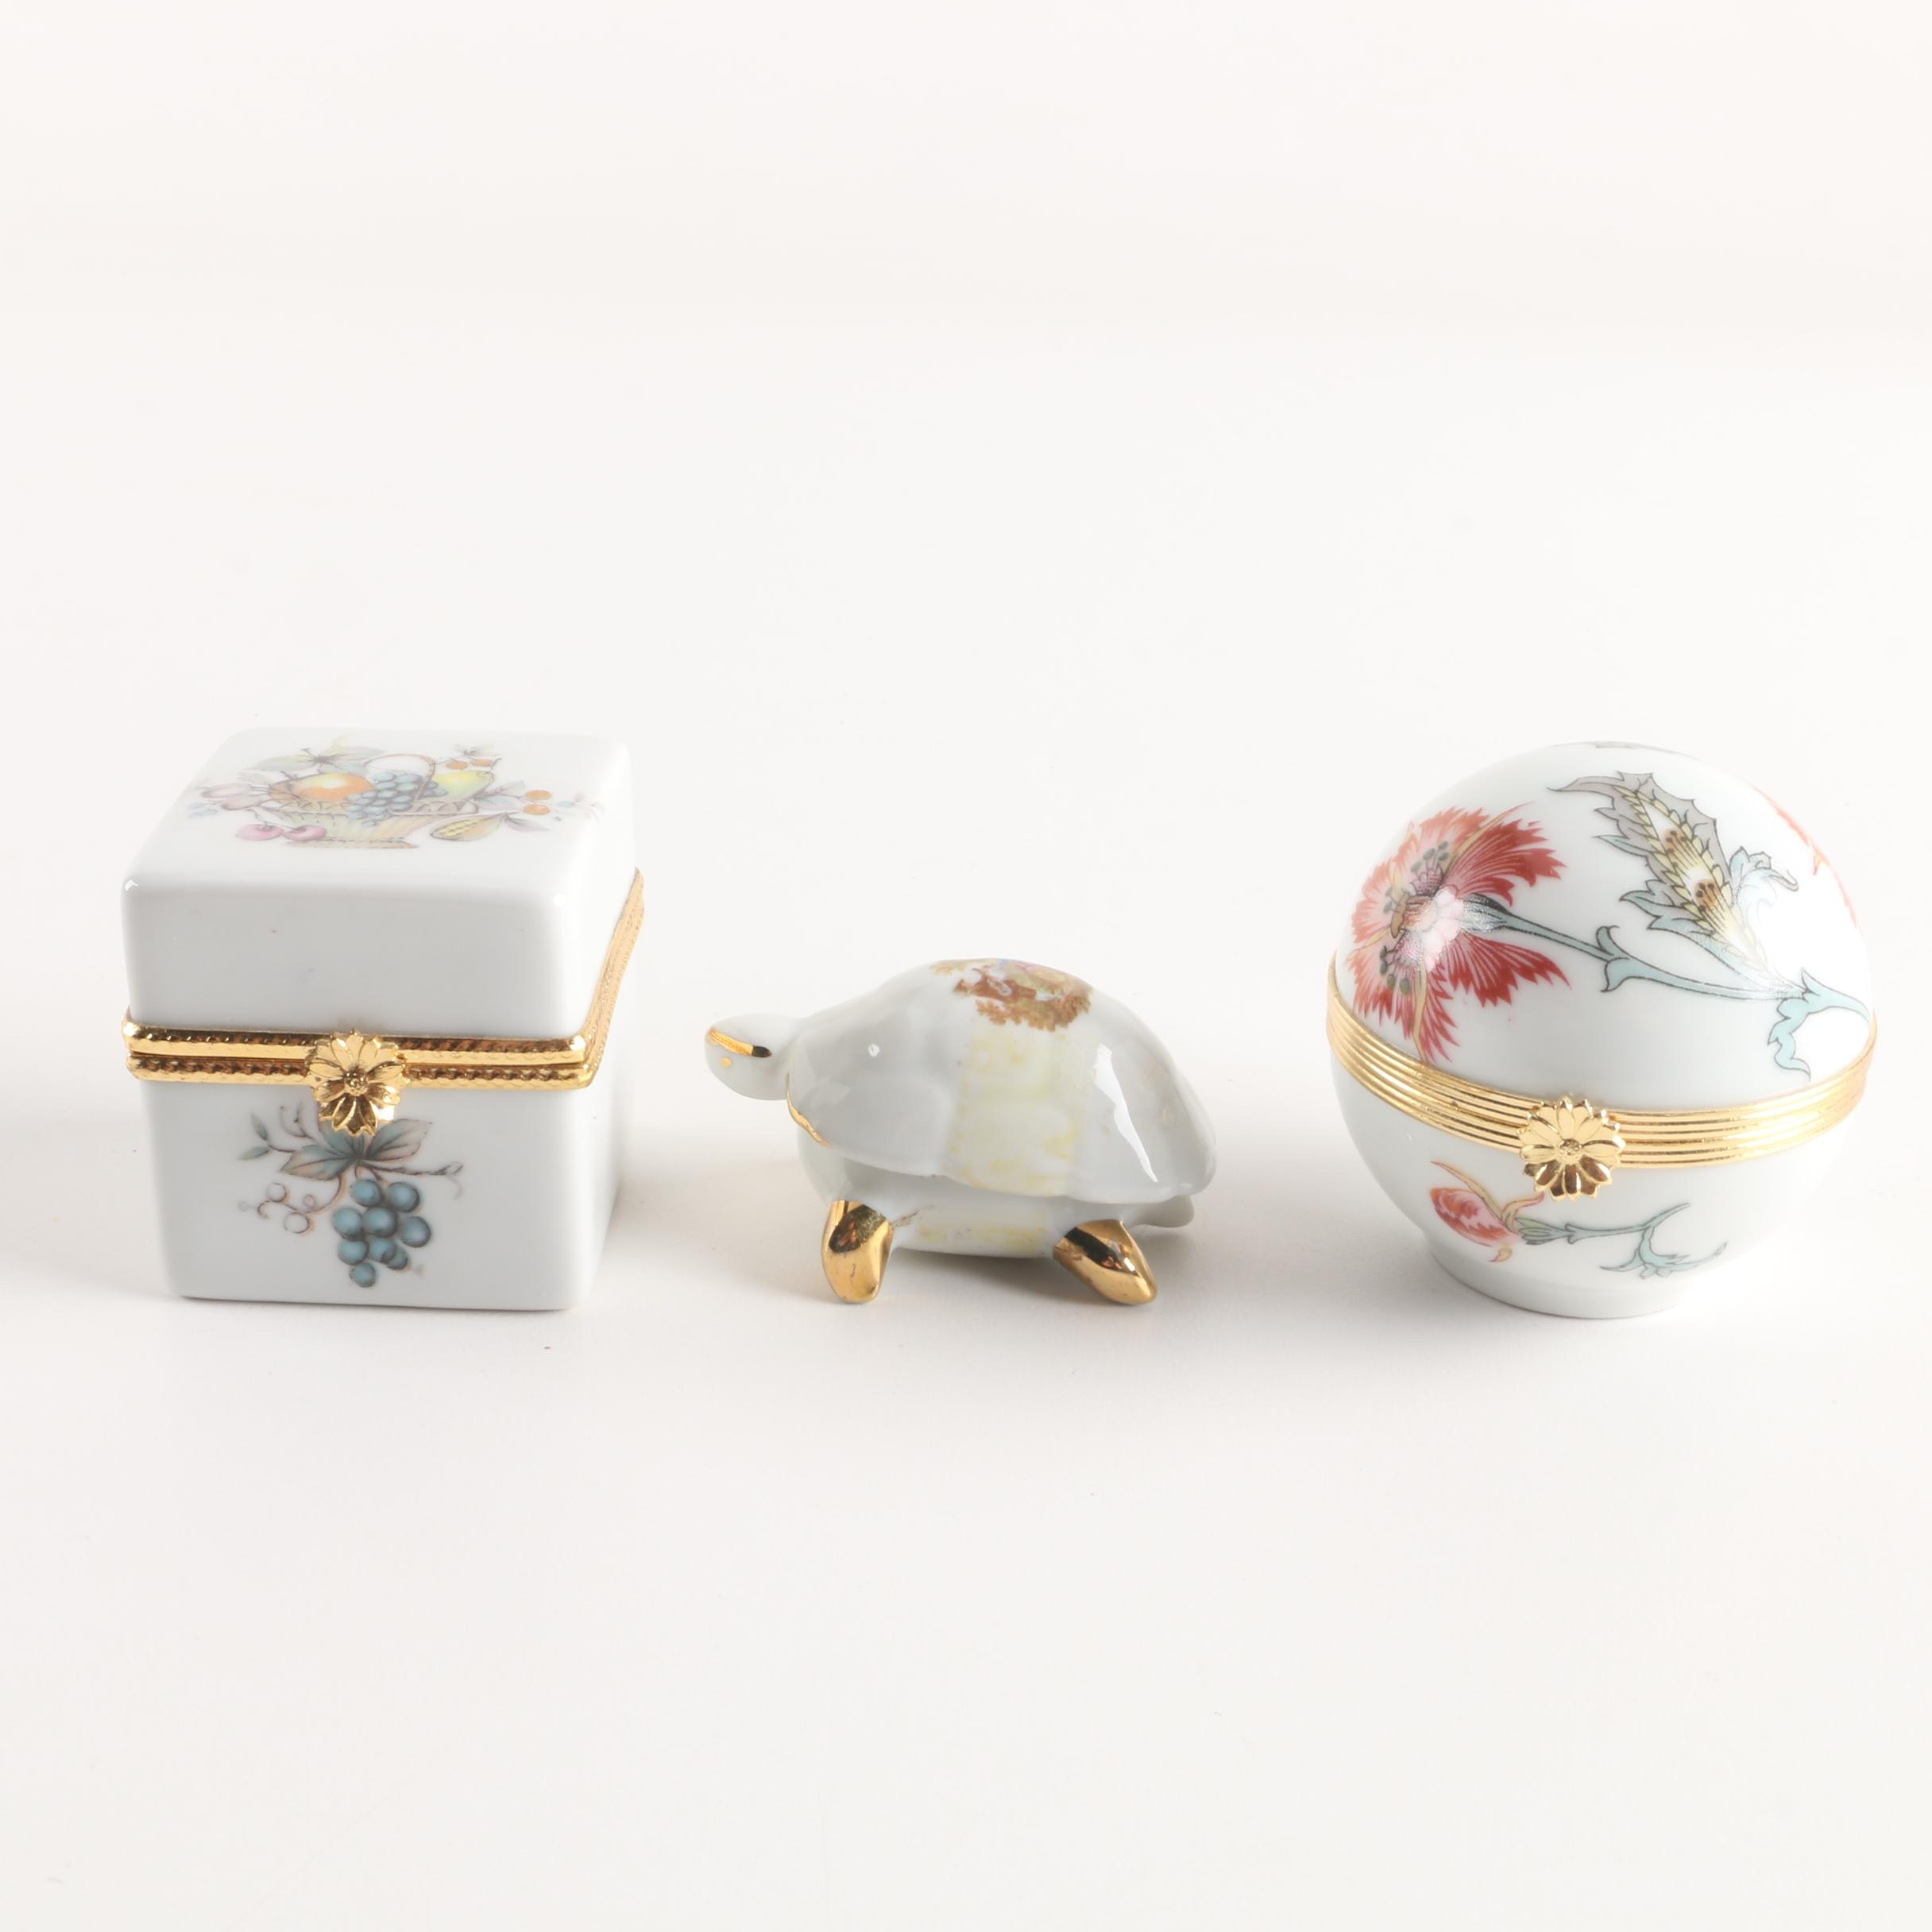 Limoges France Porcelain Turtle Trinket Box and Other French Boxes